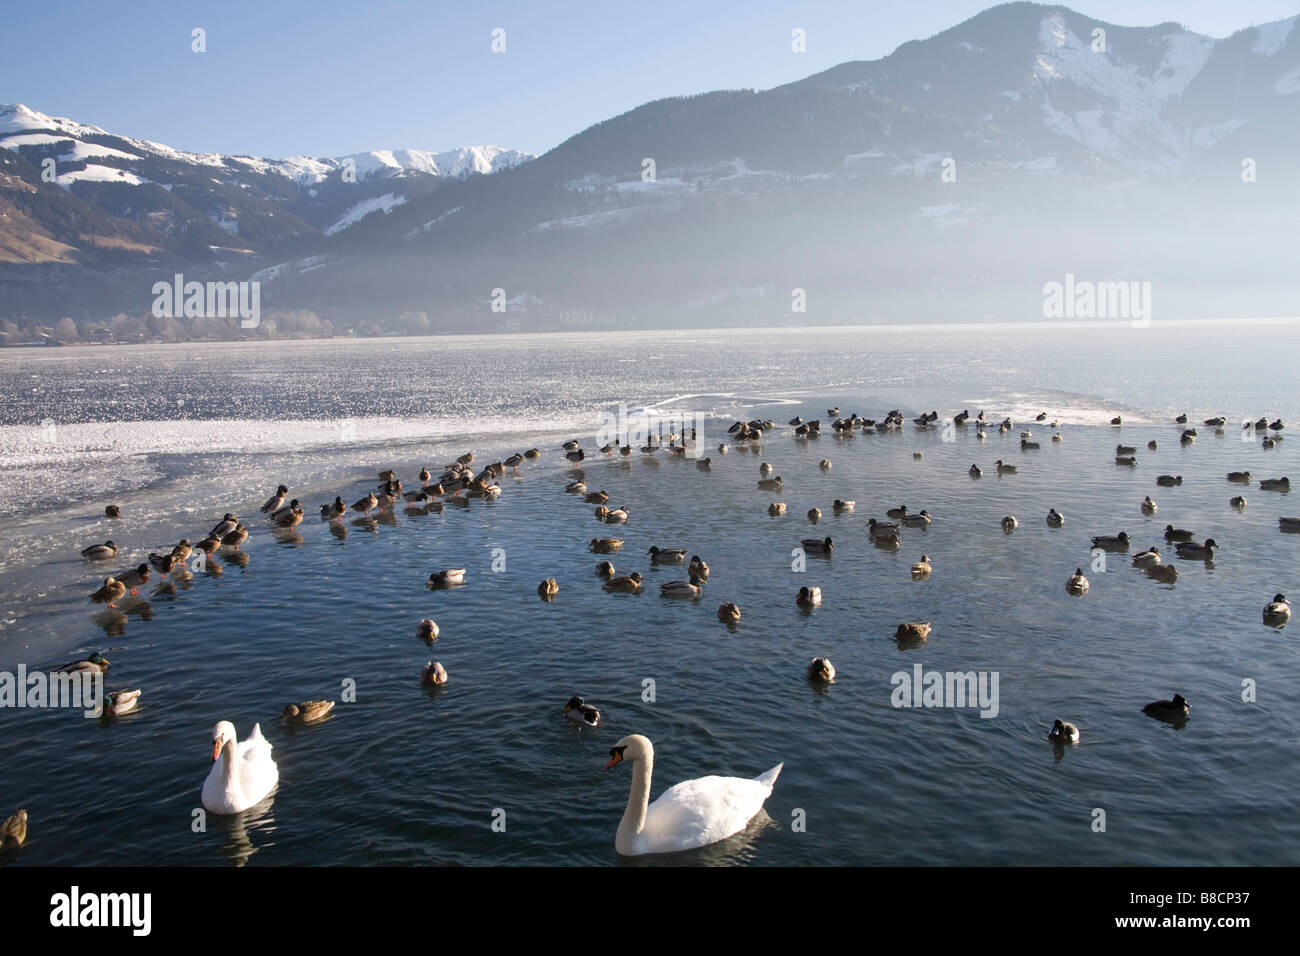 Zell am See Austria EU January Swans and wild fowl in a small area of clear water in the frozen Zeller See with - Stock Image